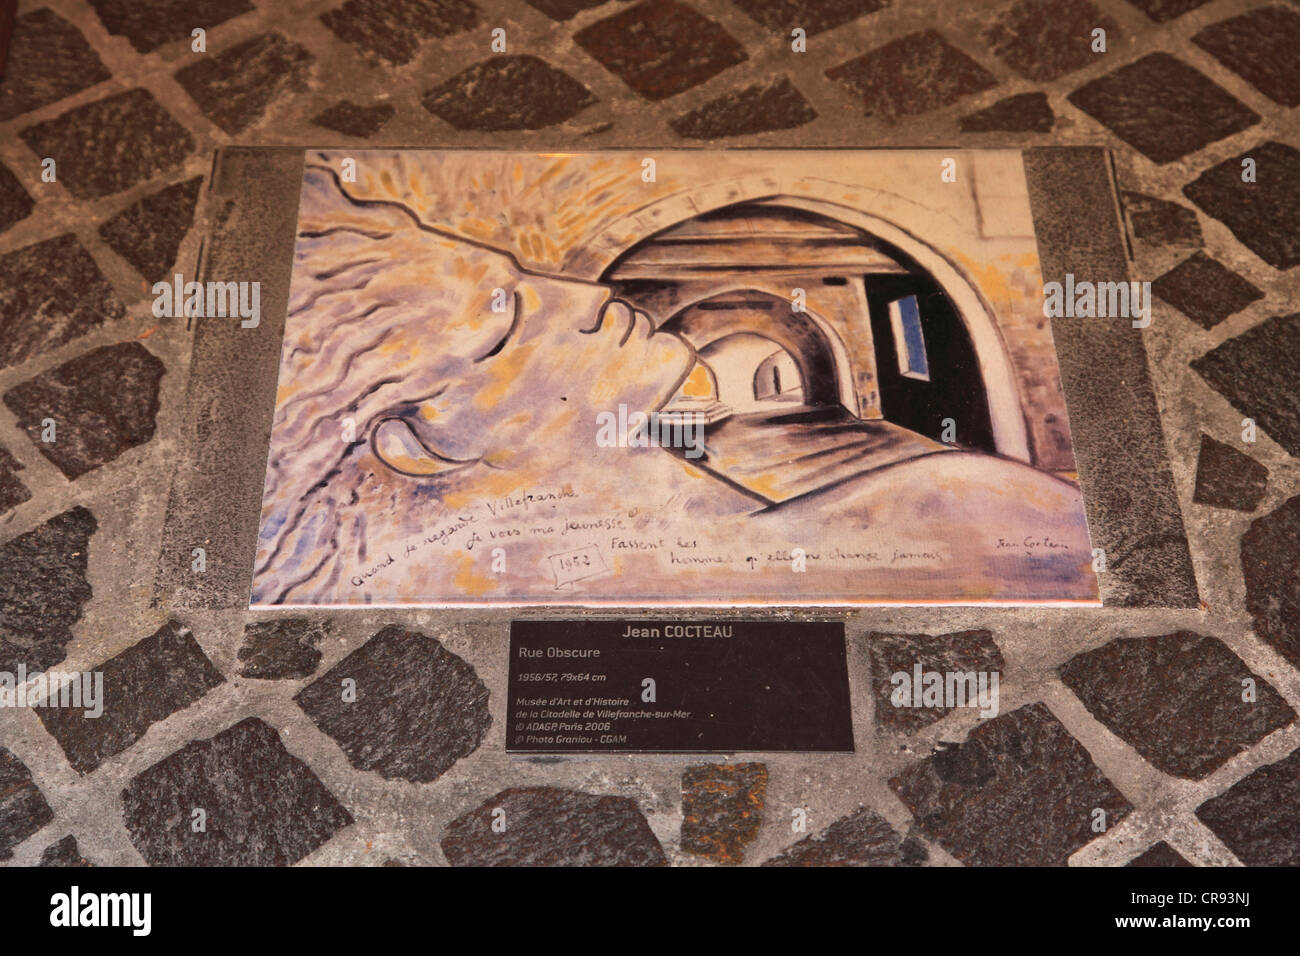 Historic sign for Rue Obscure, artist Jean Cocteau, Villefranche sur Mer, Cote d Azur, French Riviera, Provence, - Stock Image